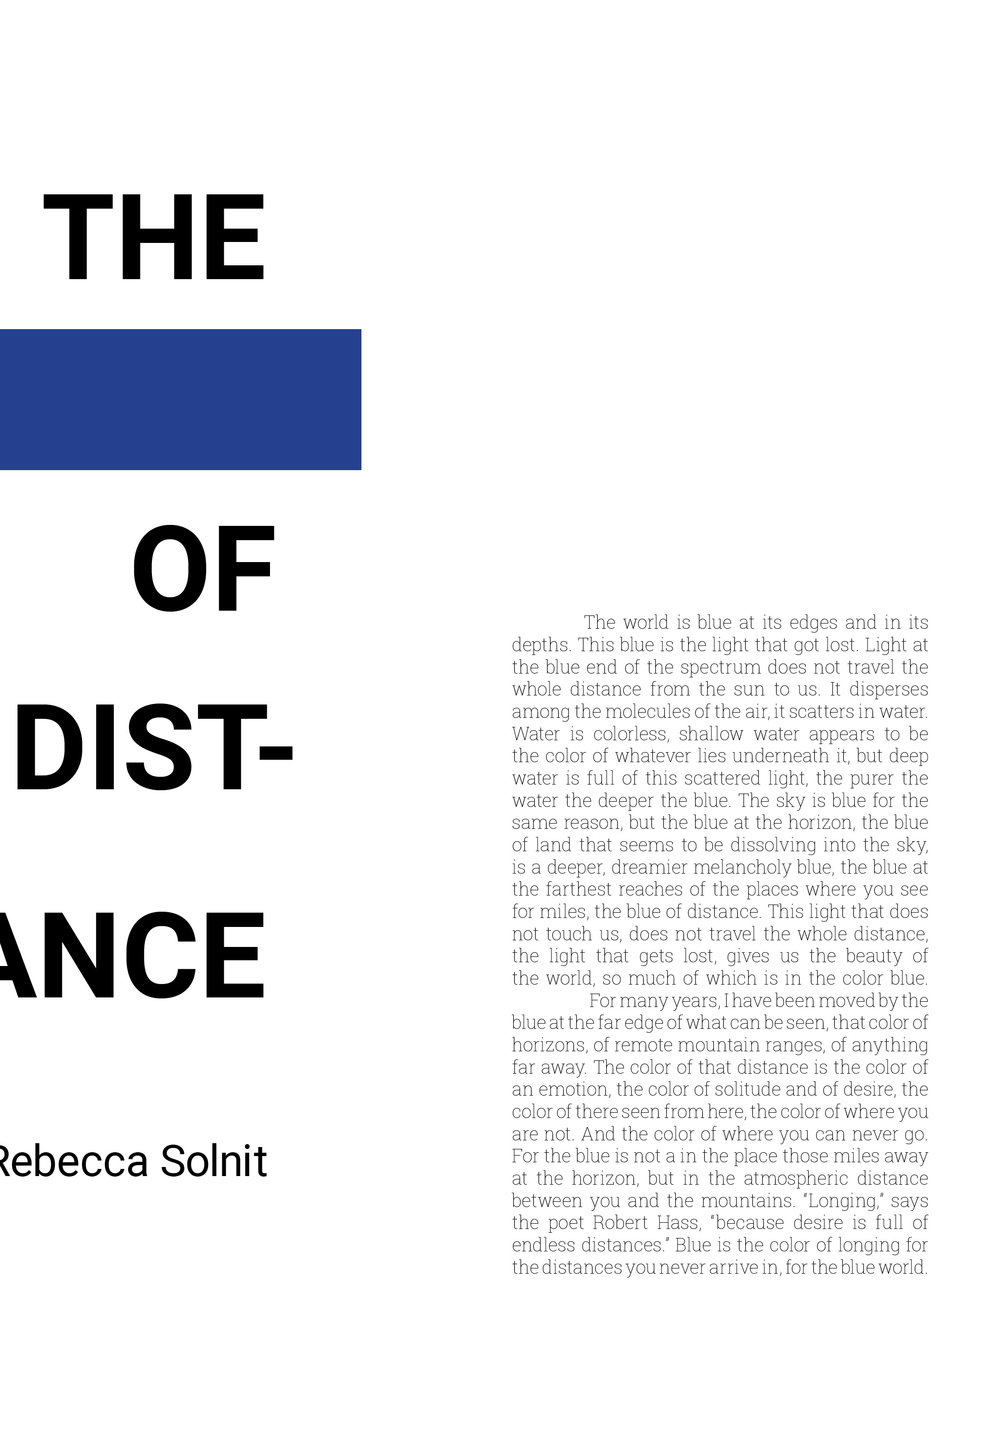 Layout design for the musings of Rebecca Solnit's The Blue of Distance. (SVC Typography Assignment)